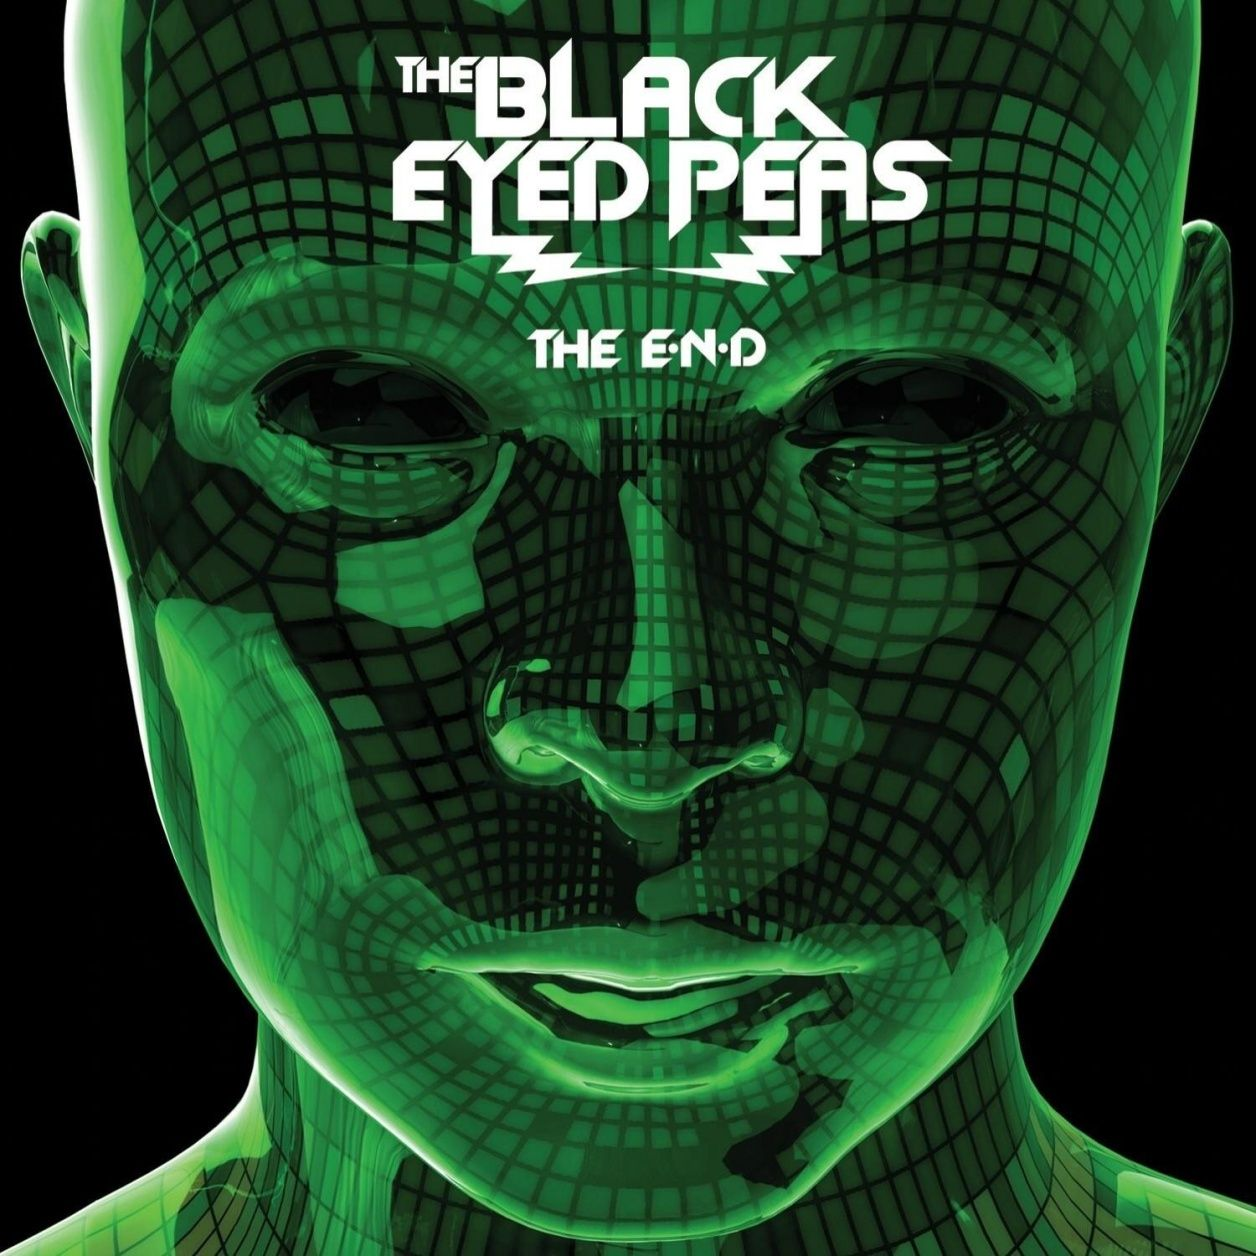 The Black Eyed Peas - The E.n.d. album cover